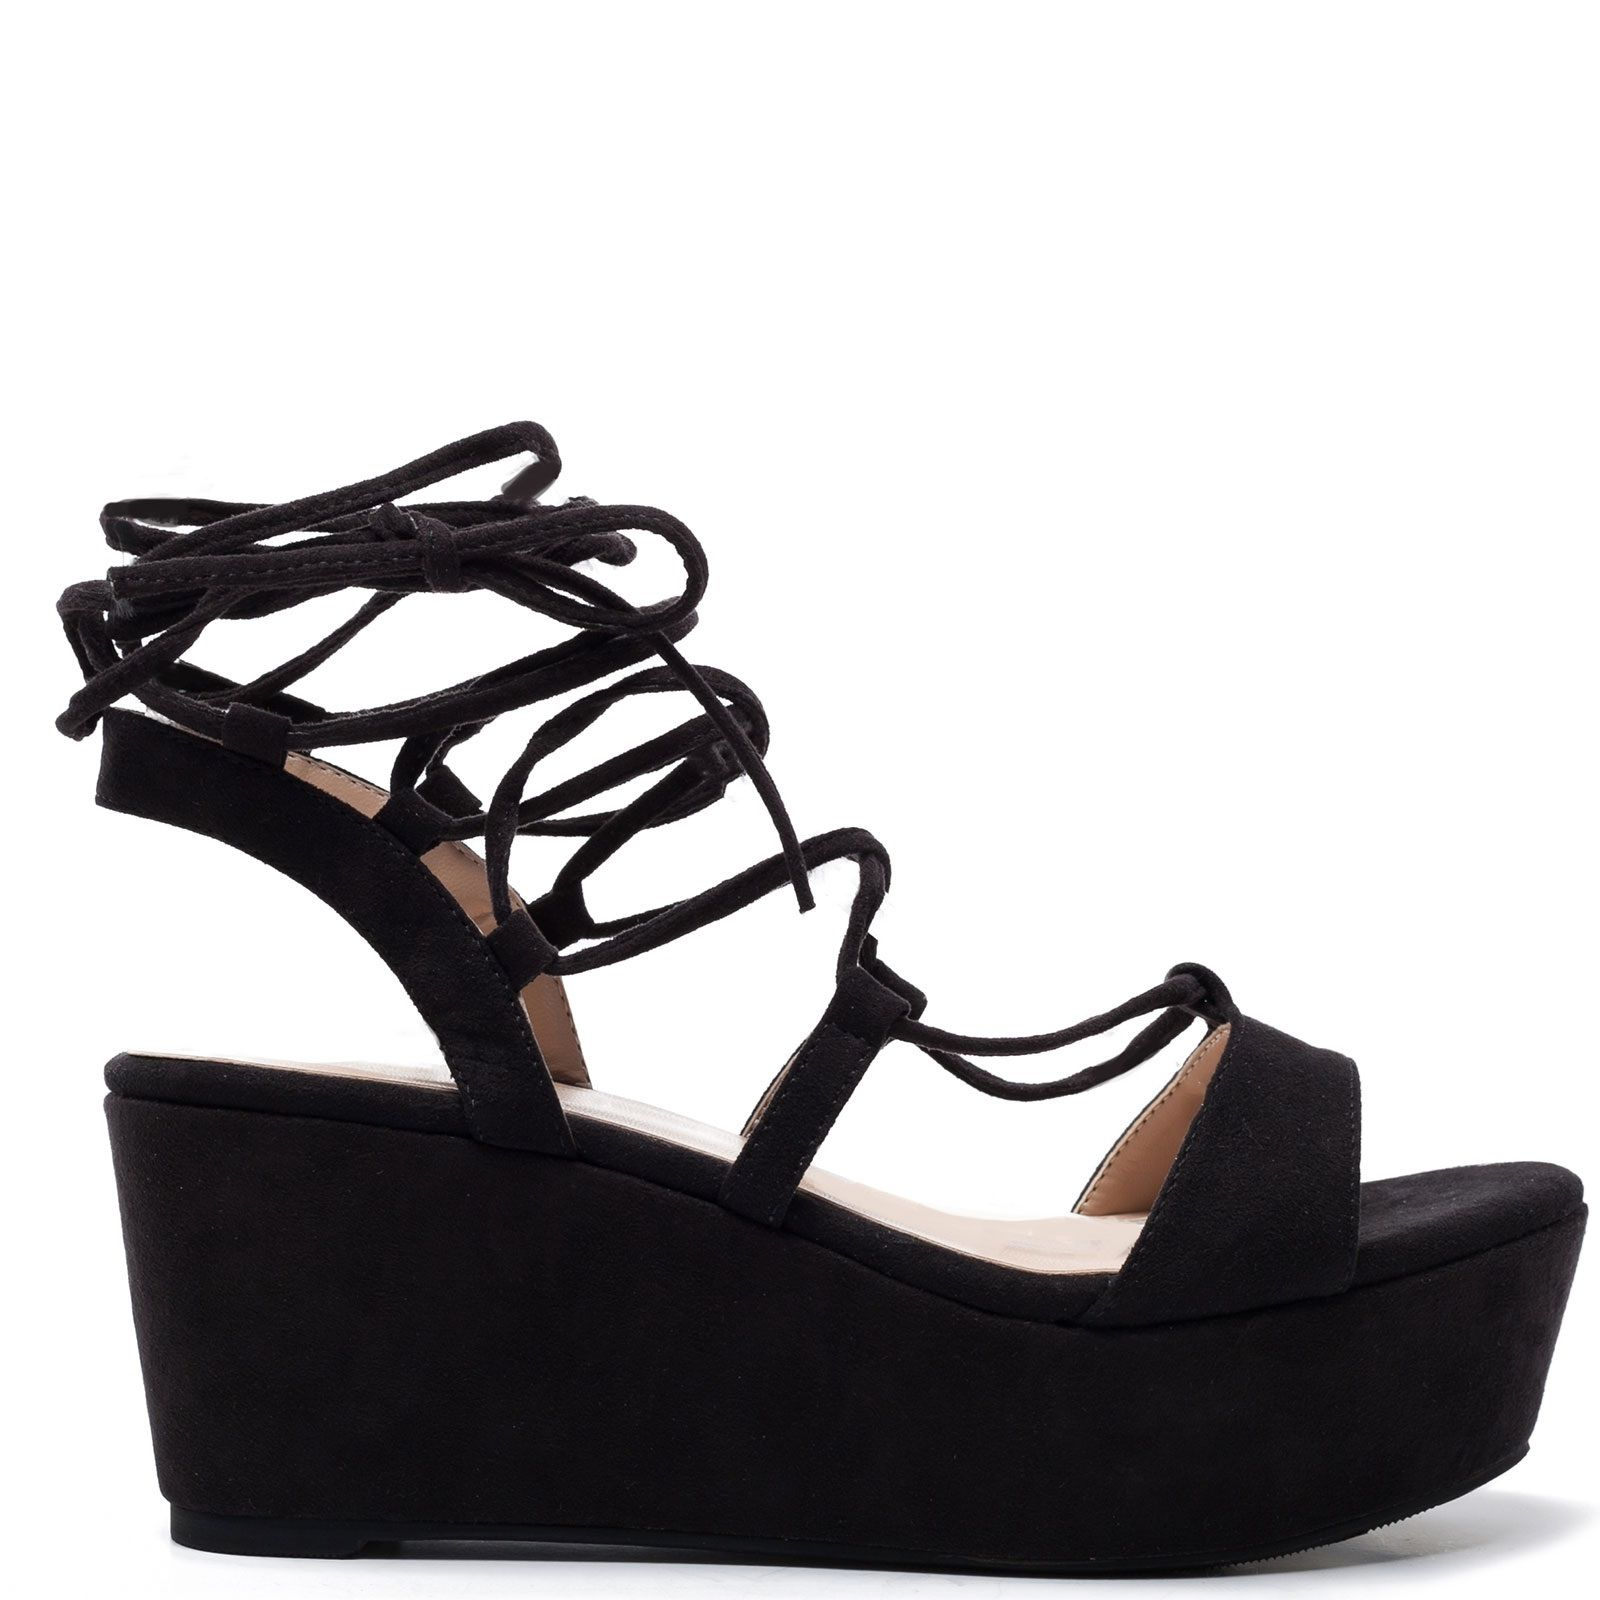 Black low platform with laces that tie on the ankle.